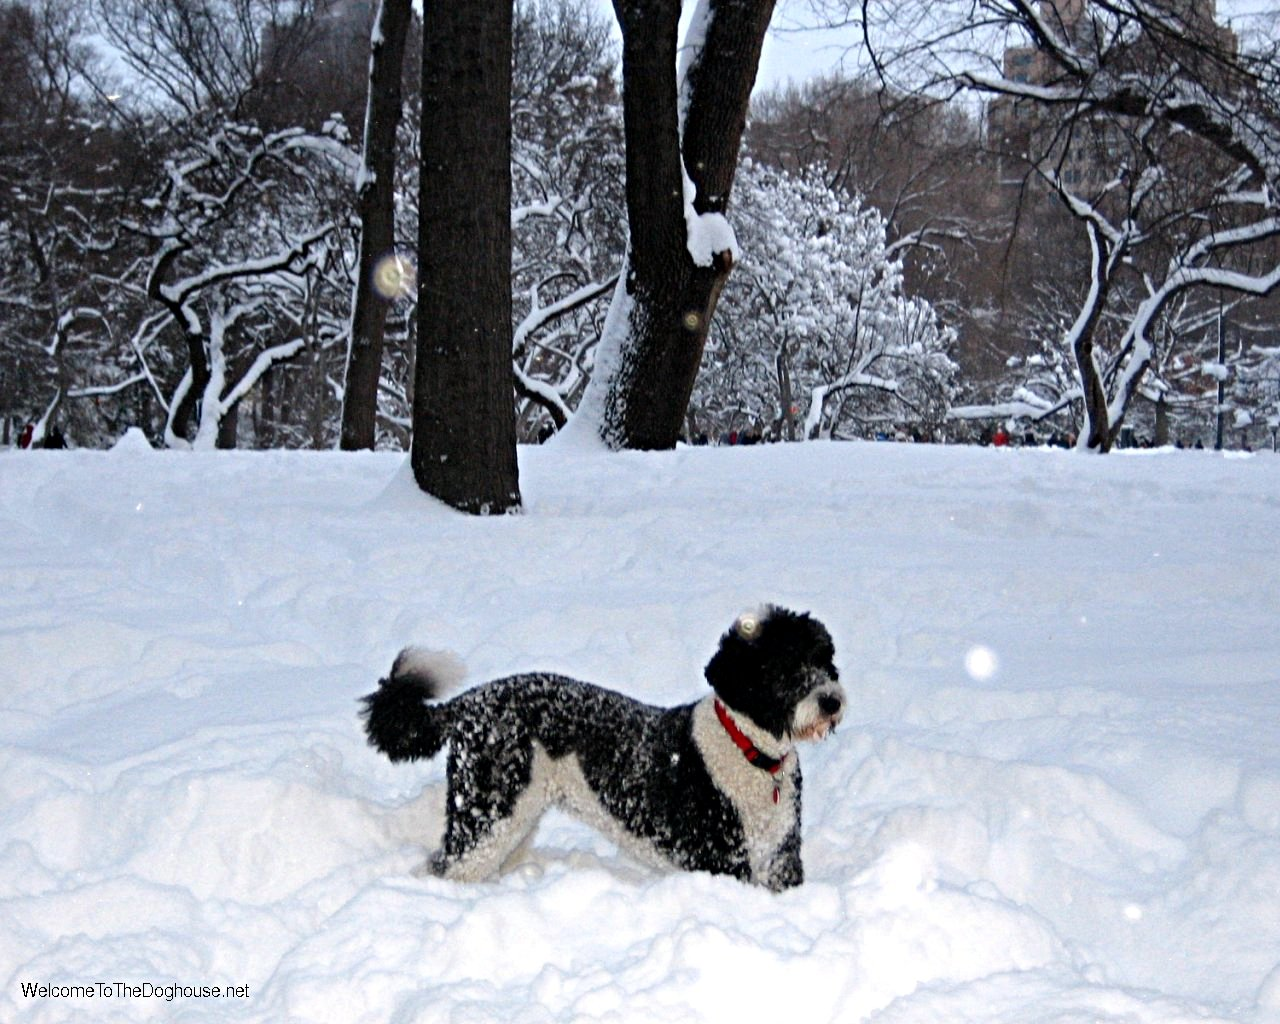 snow_dog_wallpaper.jpg